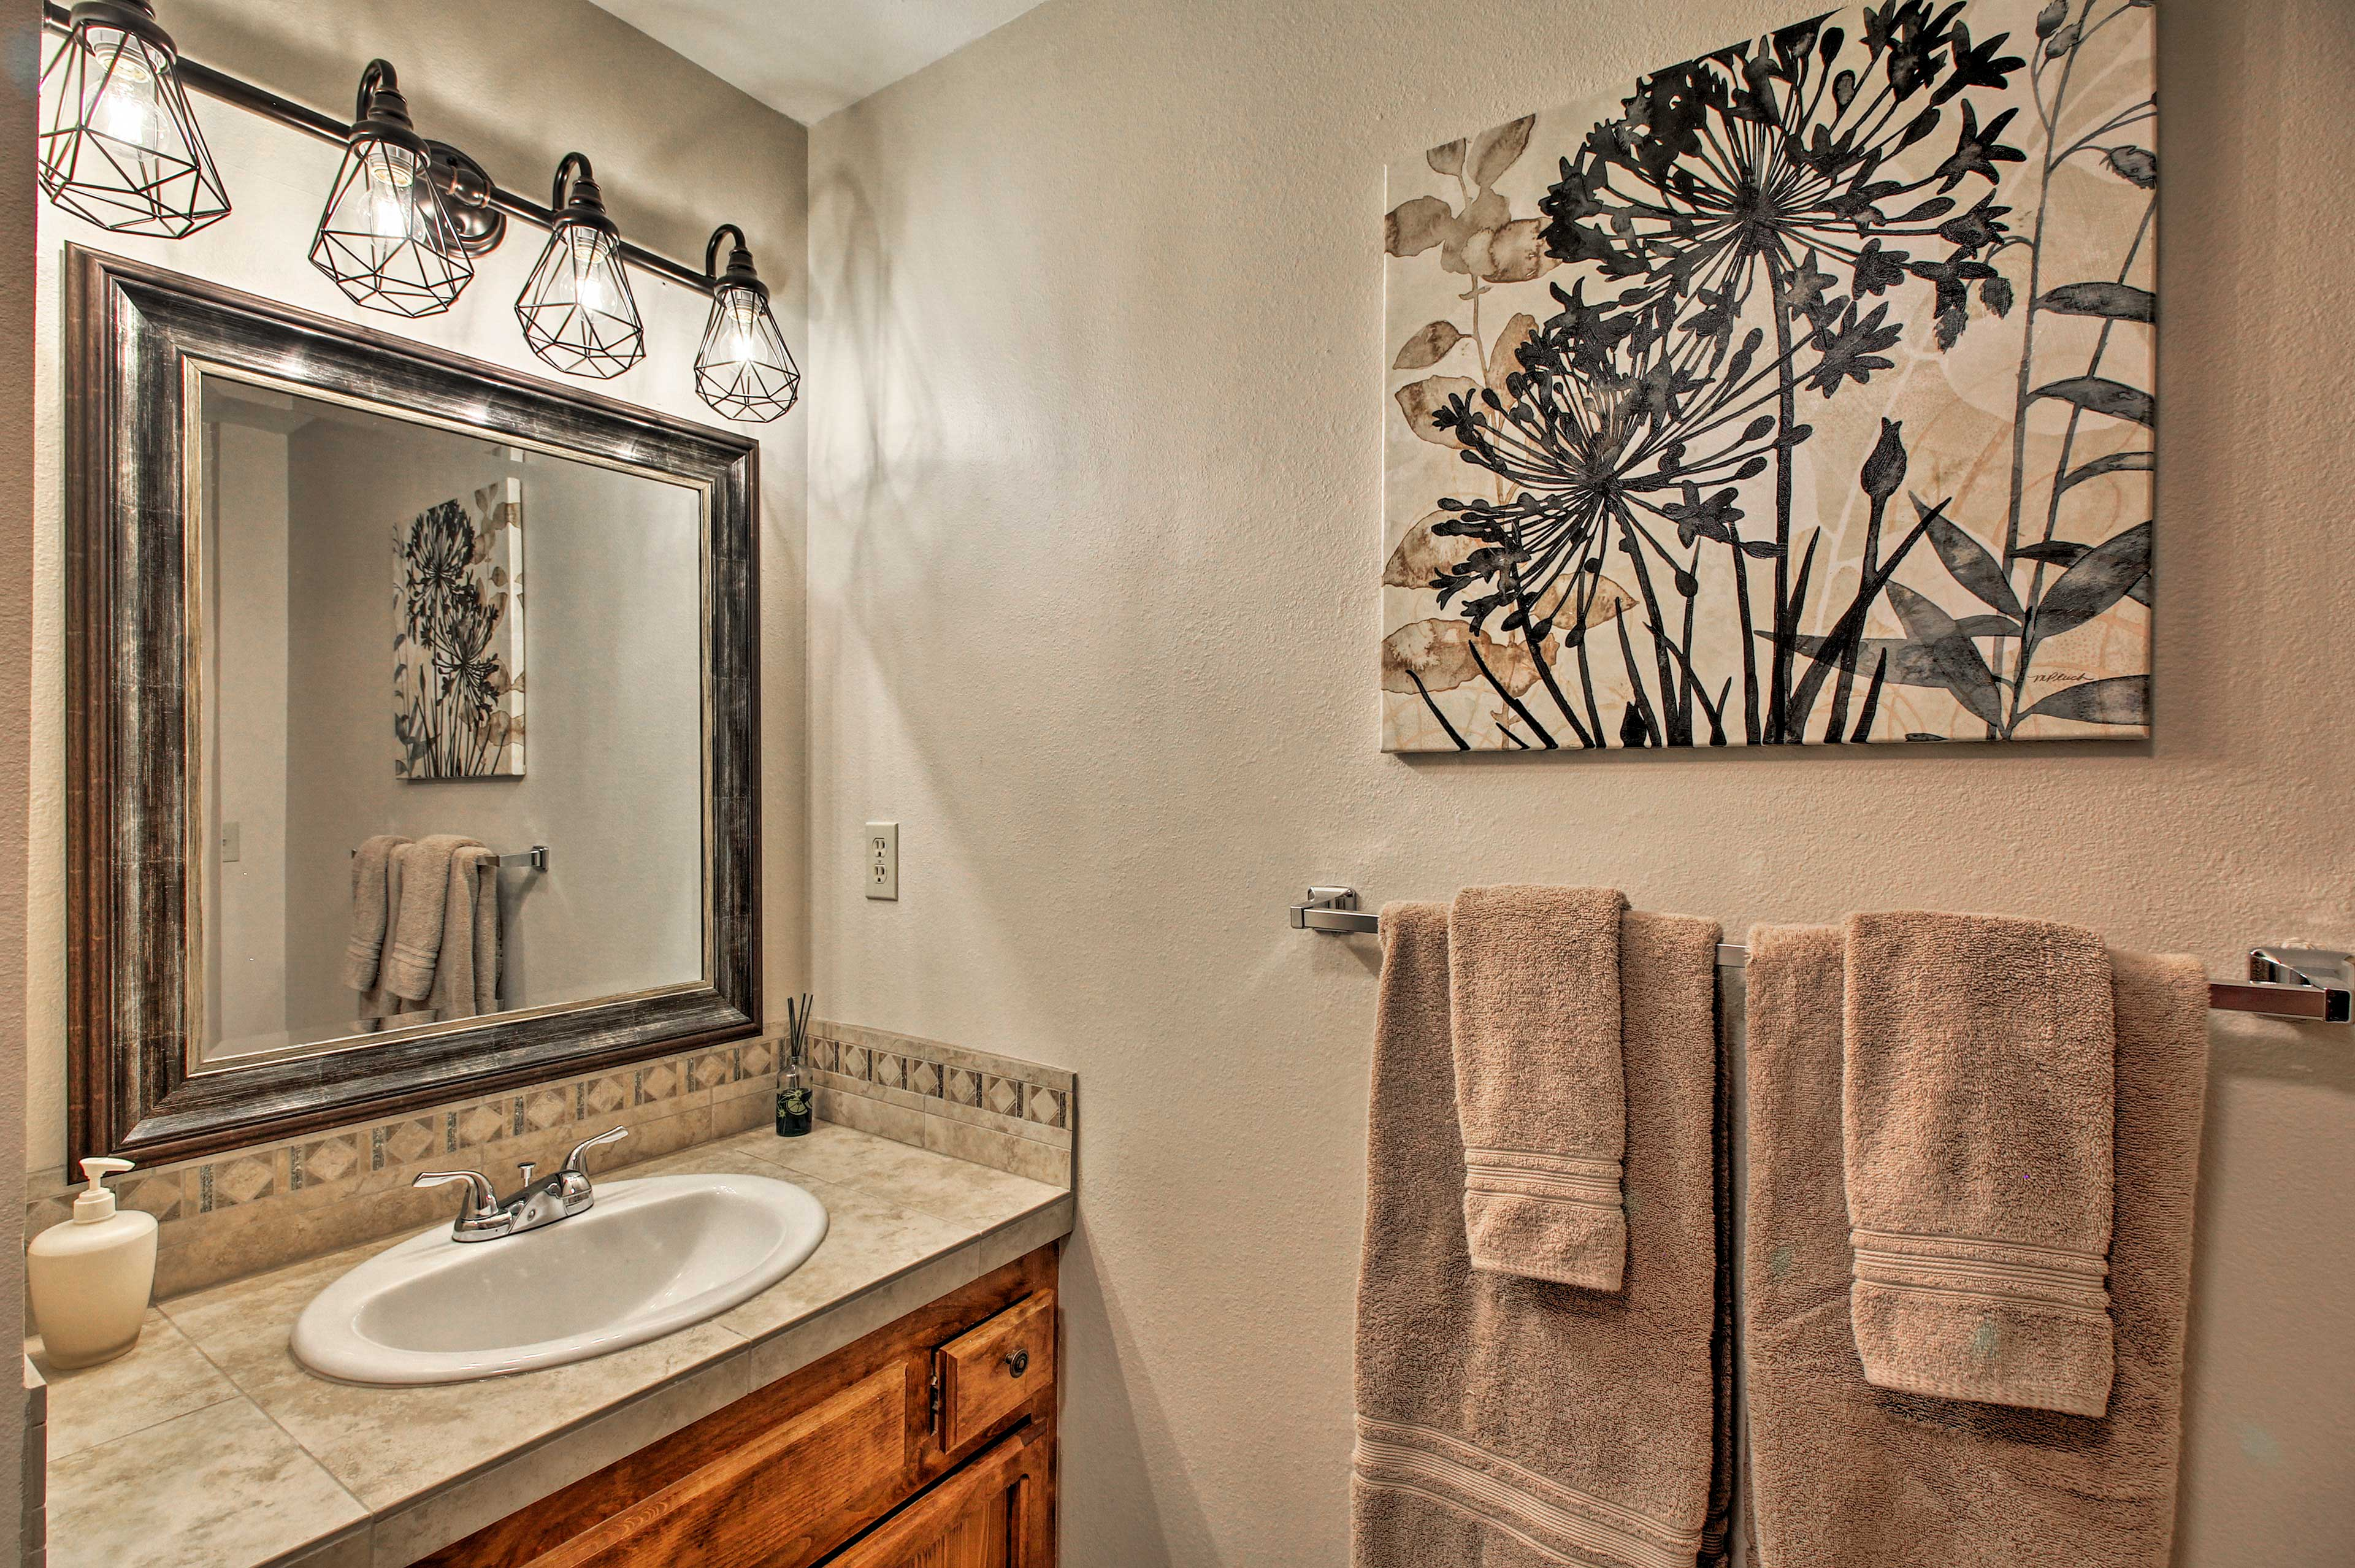 You'll love the tile-filled bathrooms.